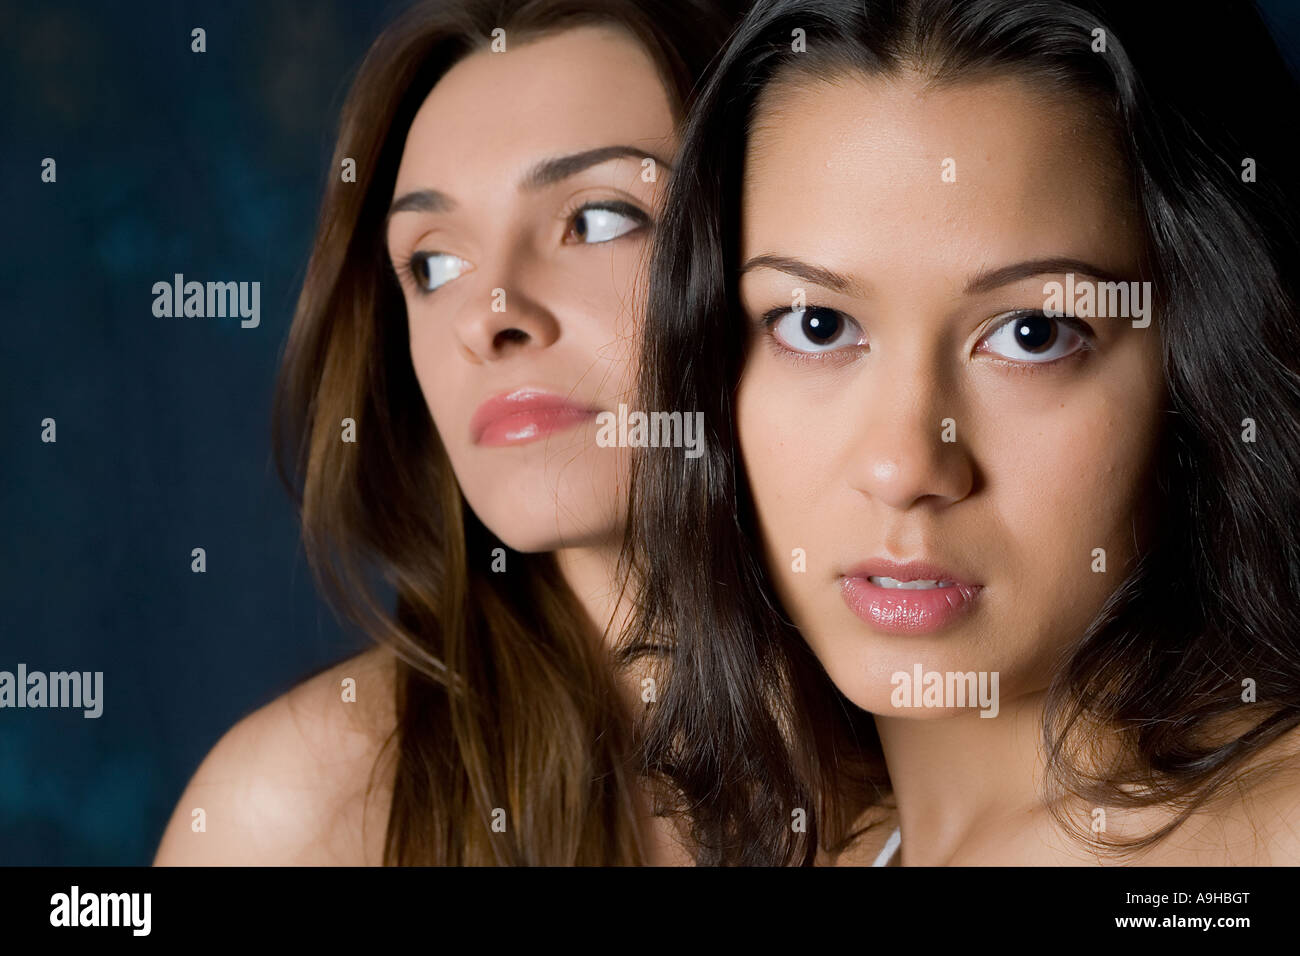 two brunette models with focus on one and serious expressions - Stock Image